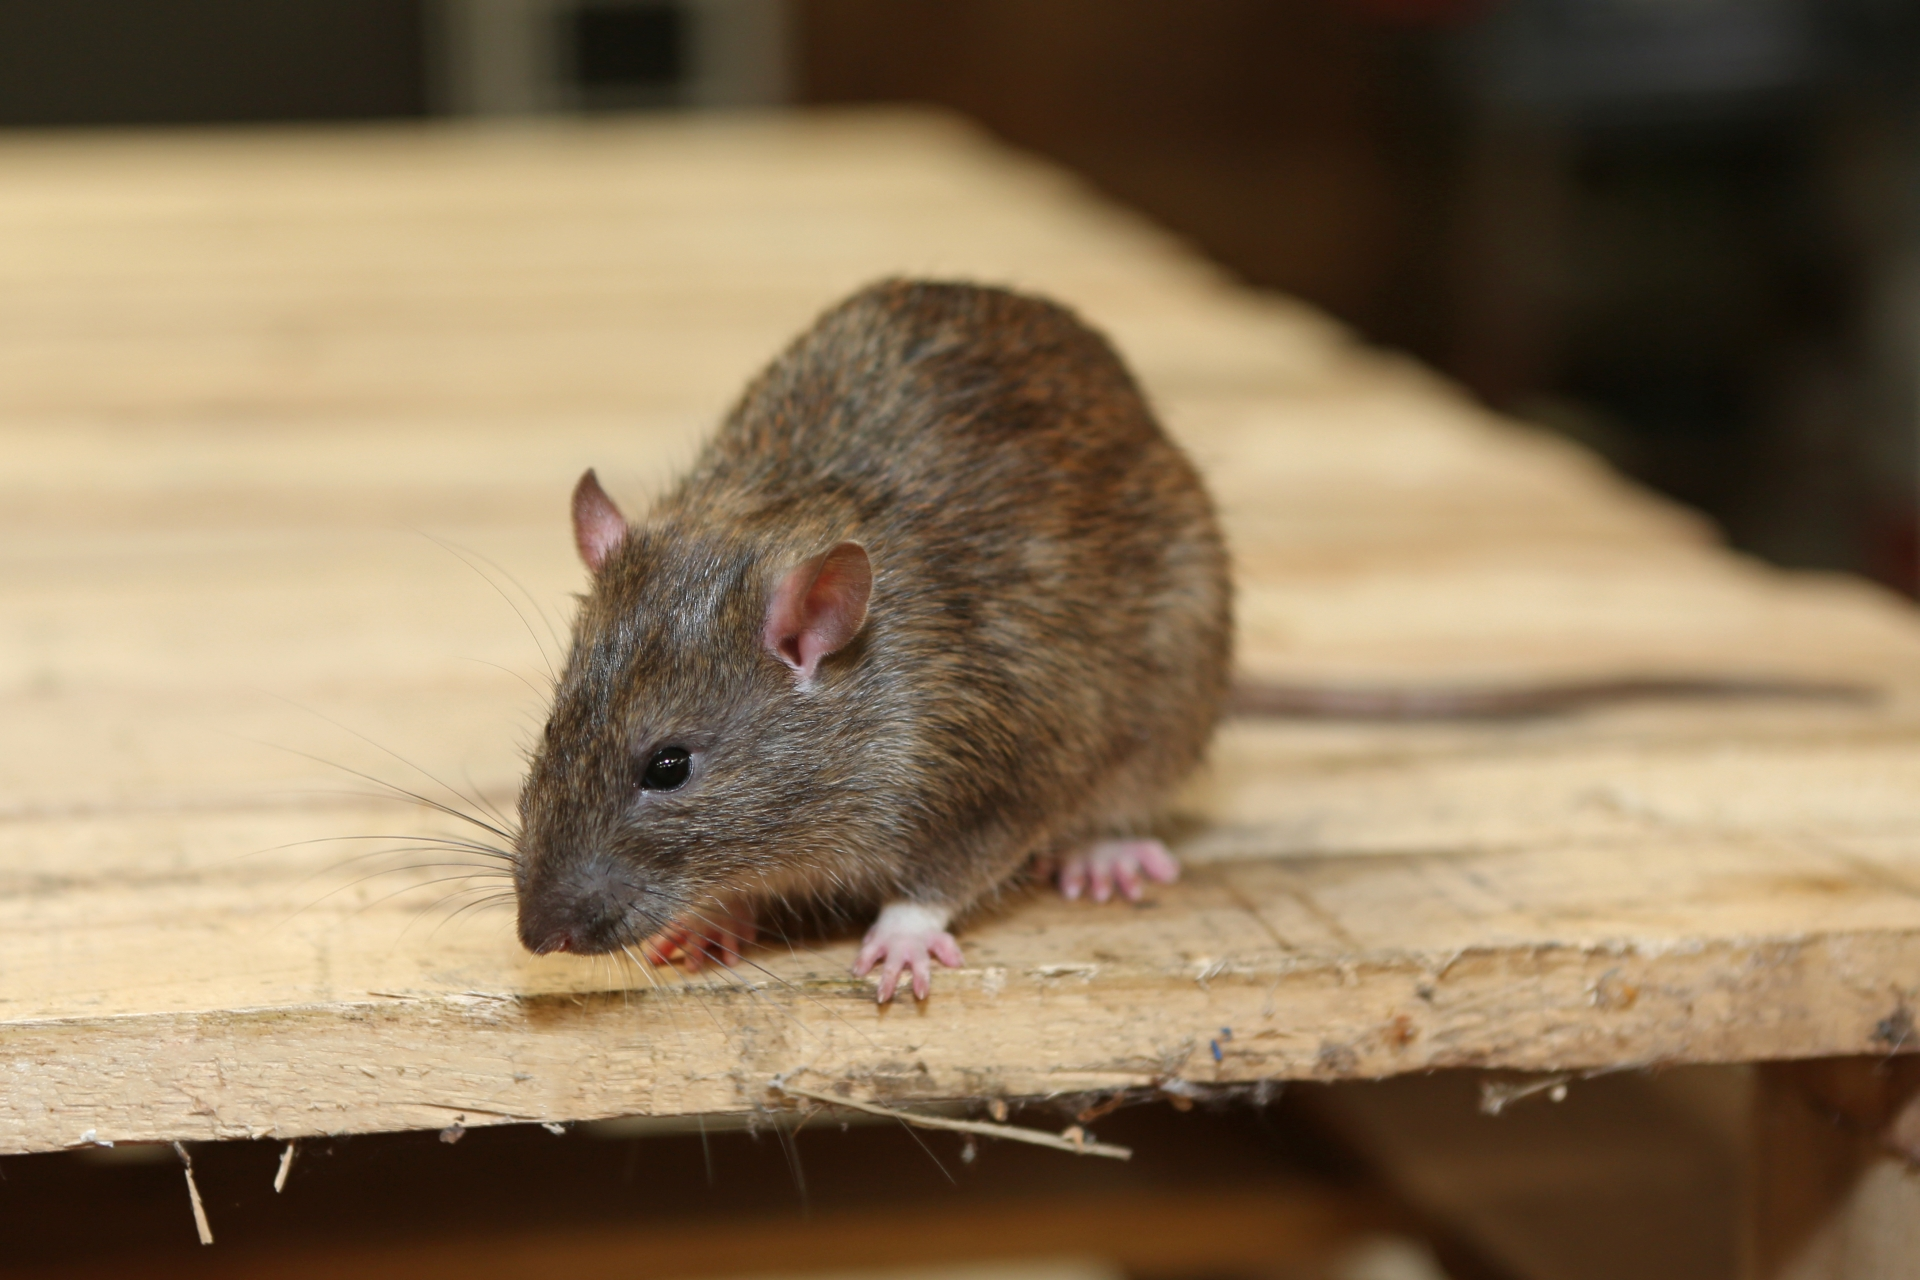 Rat extermination, Pest Control in Regent's Park, NW1. Call Now 020 8166 9746